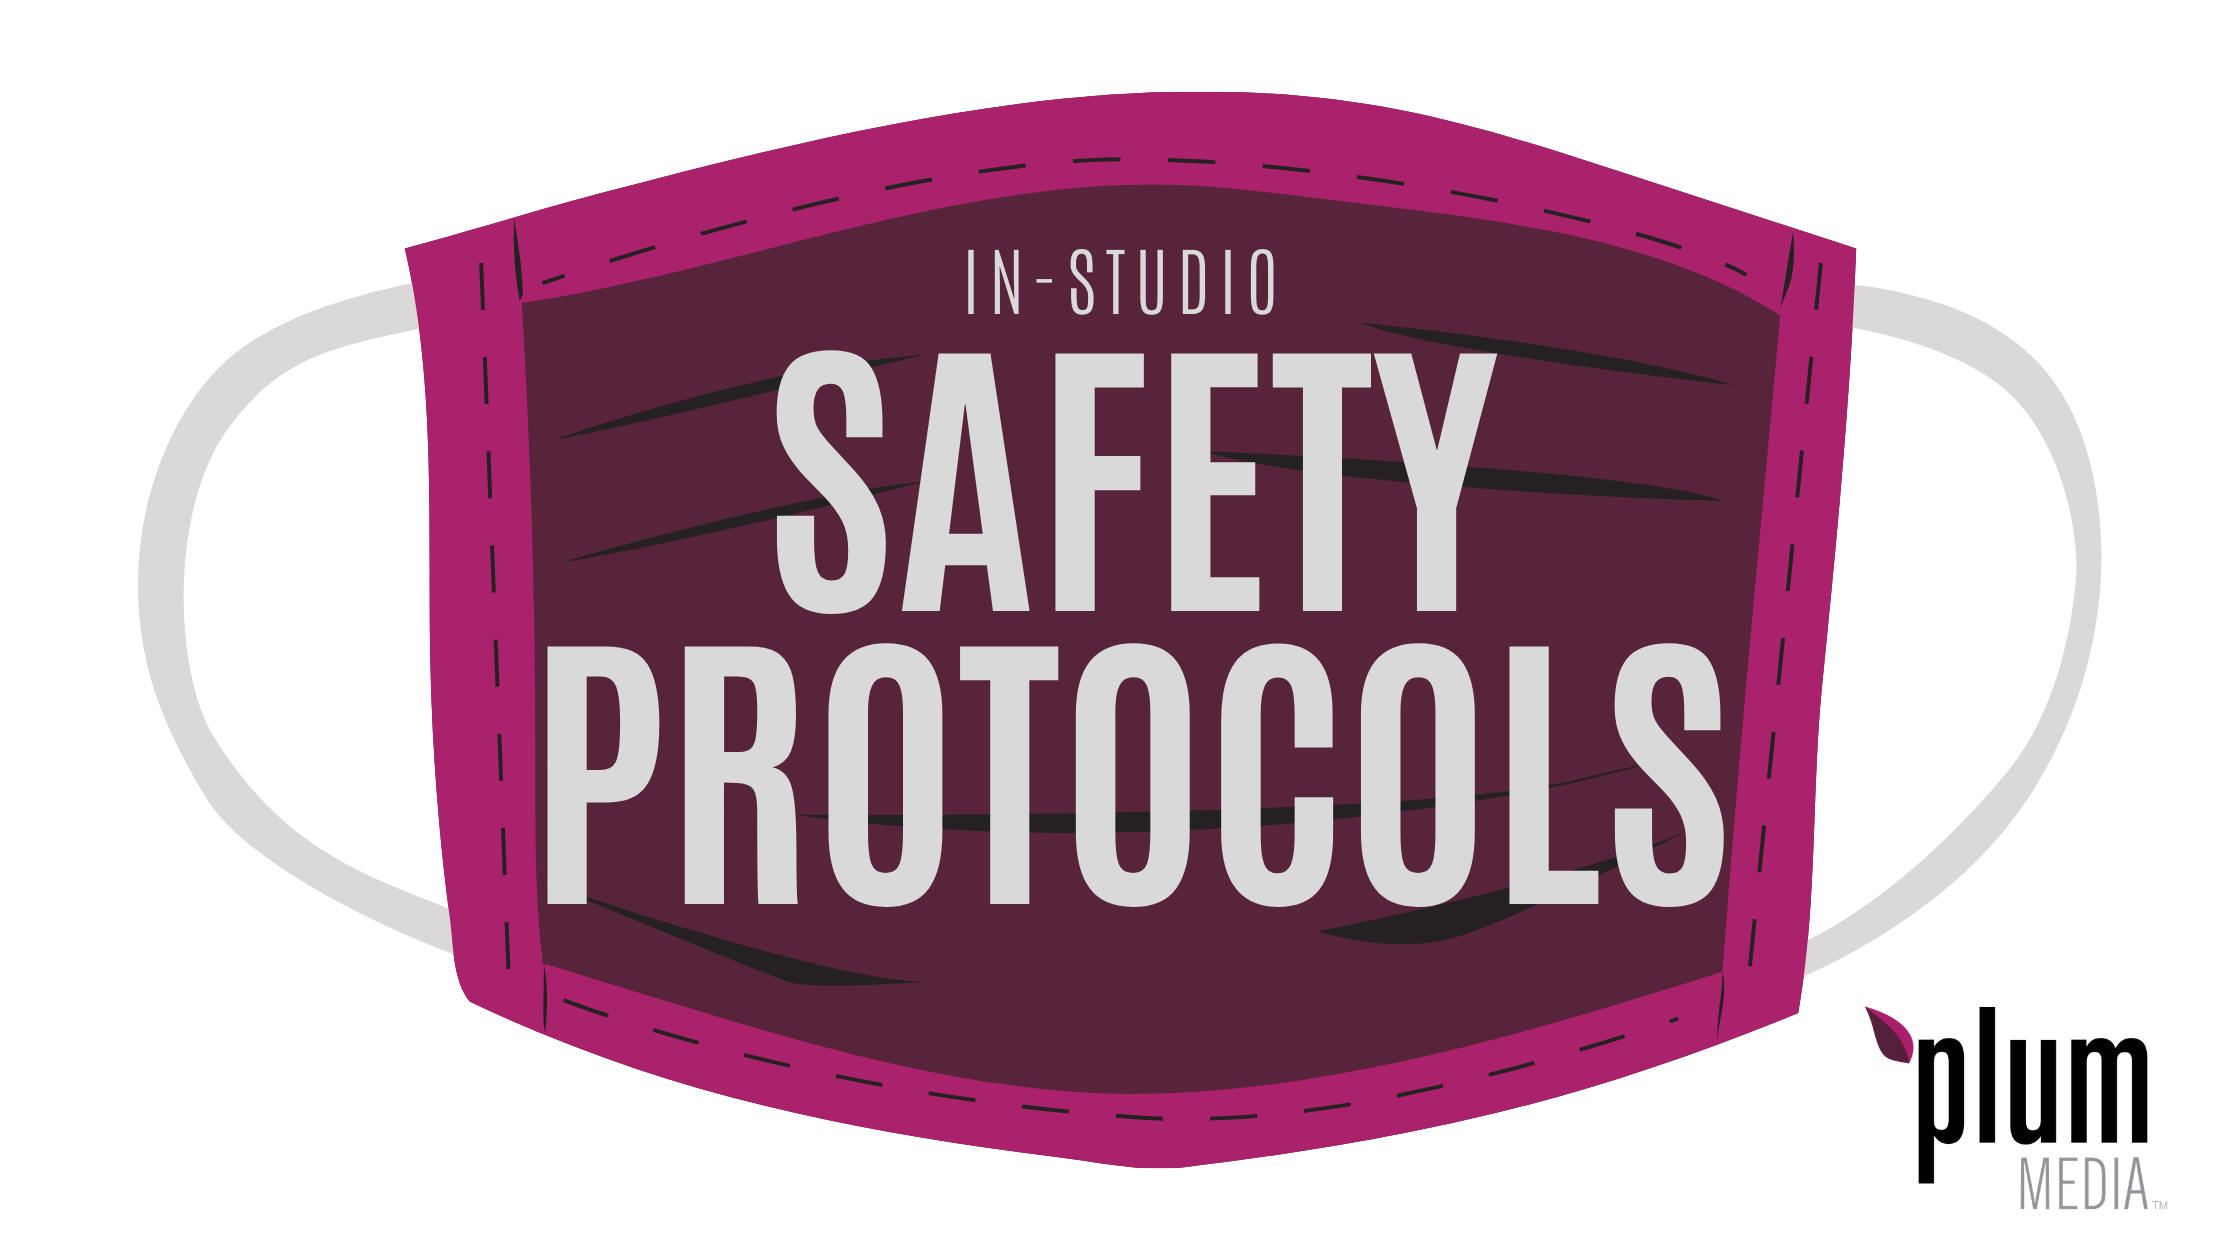 Plum Media In Studio Safety Protocols